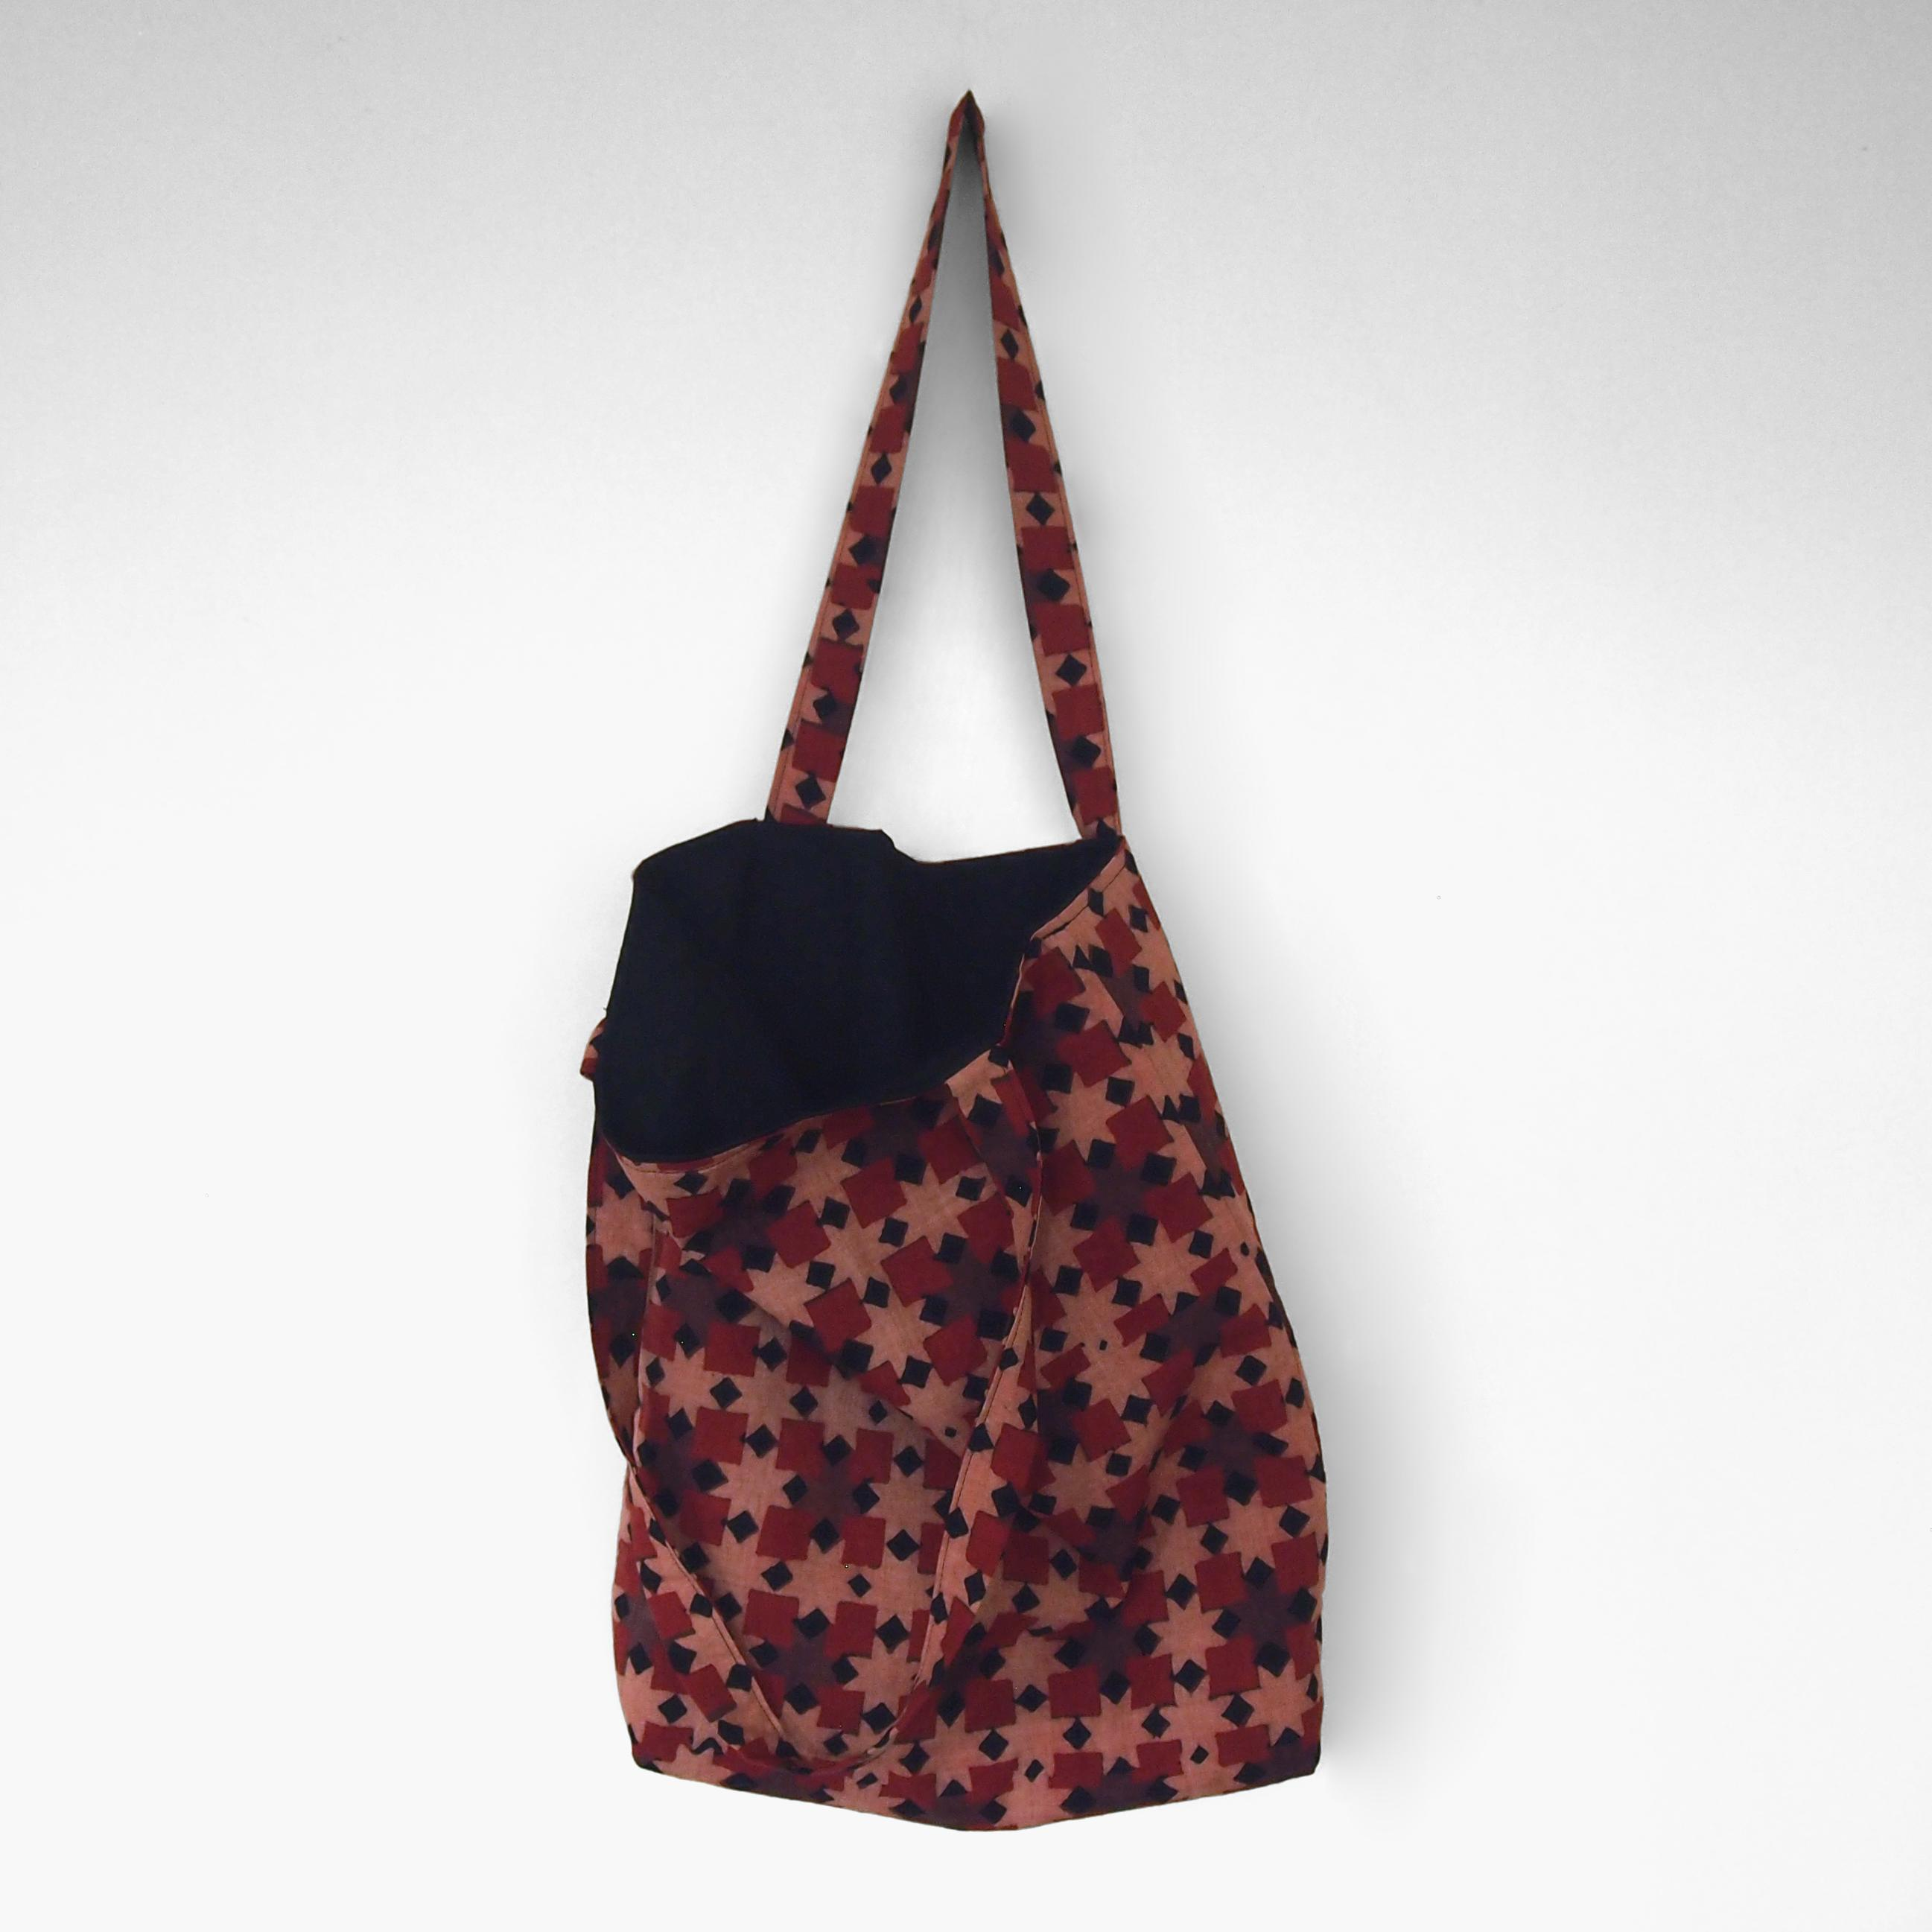 block printed cotton tote bag, pink, red ochre black square design, natural dye, lined with black cotton, open